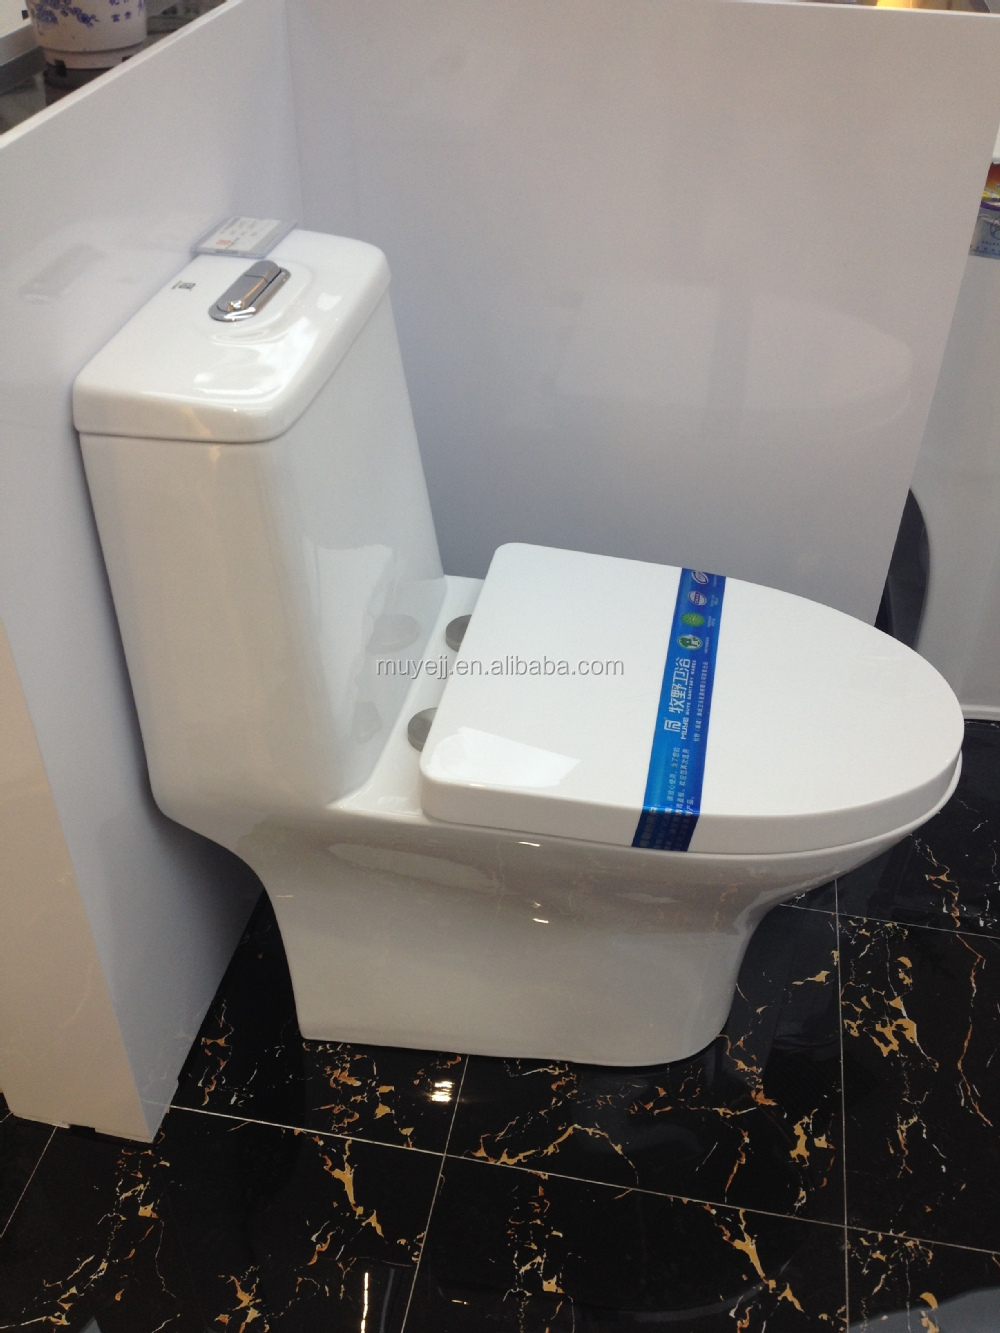 MY-2456 High-grade siphonic western toilet closet water closet